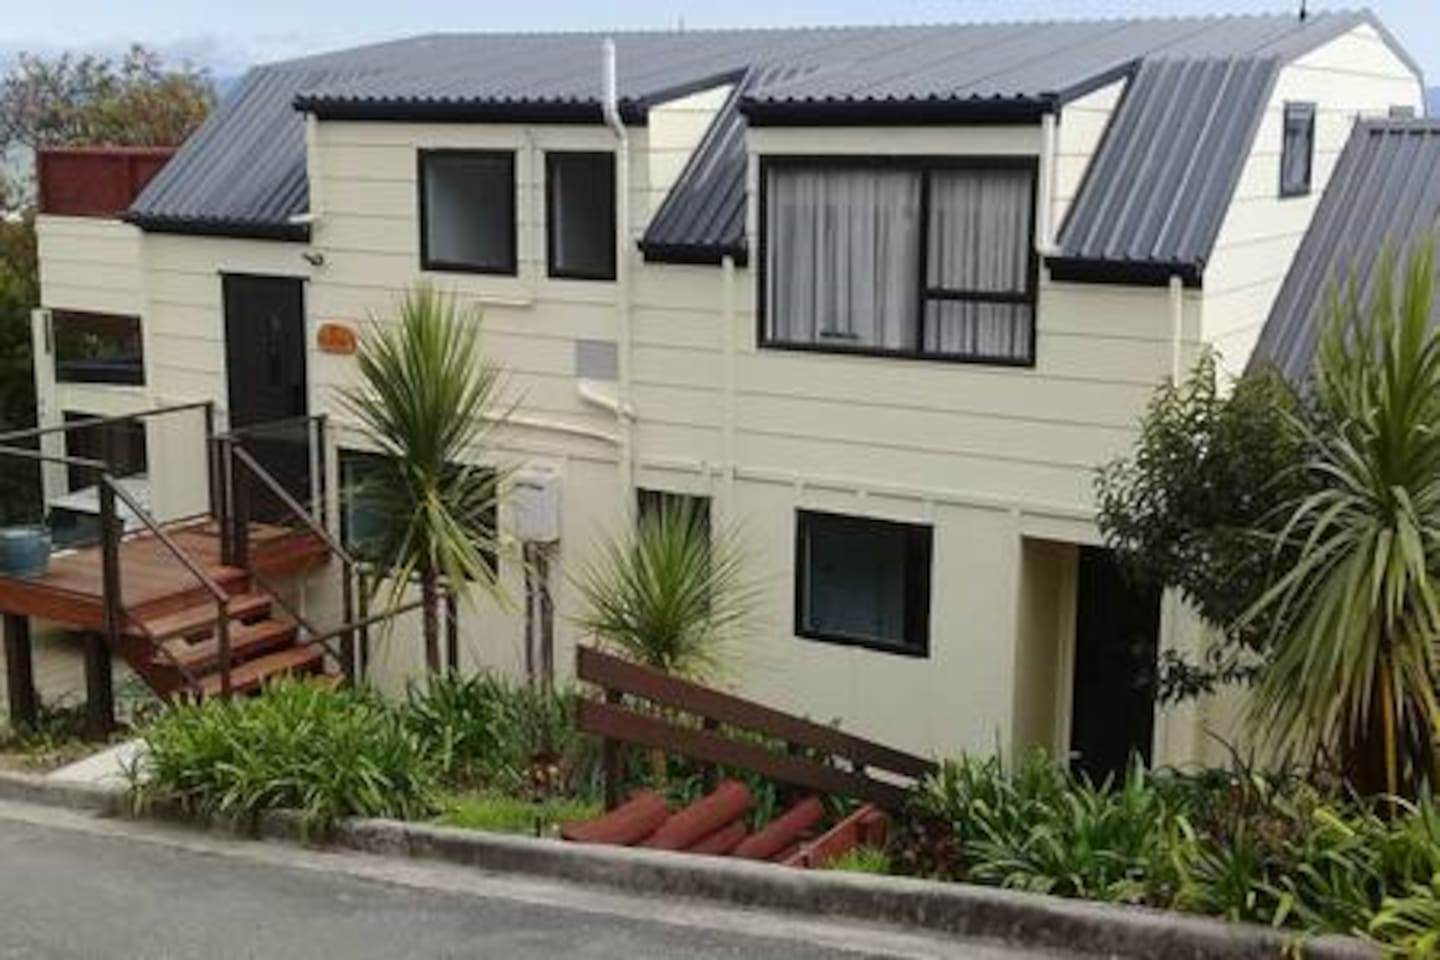 The Seaview HOUSE. Entire upper level is AirB&B plus new Deck!  View to die for of the Tasman Sea!